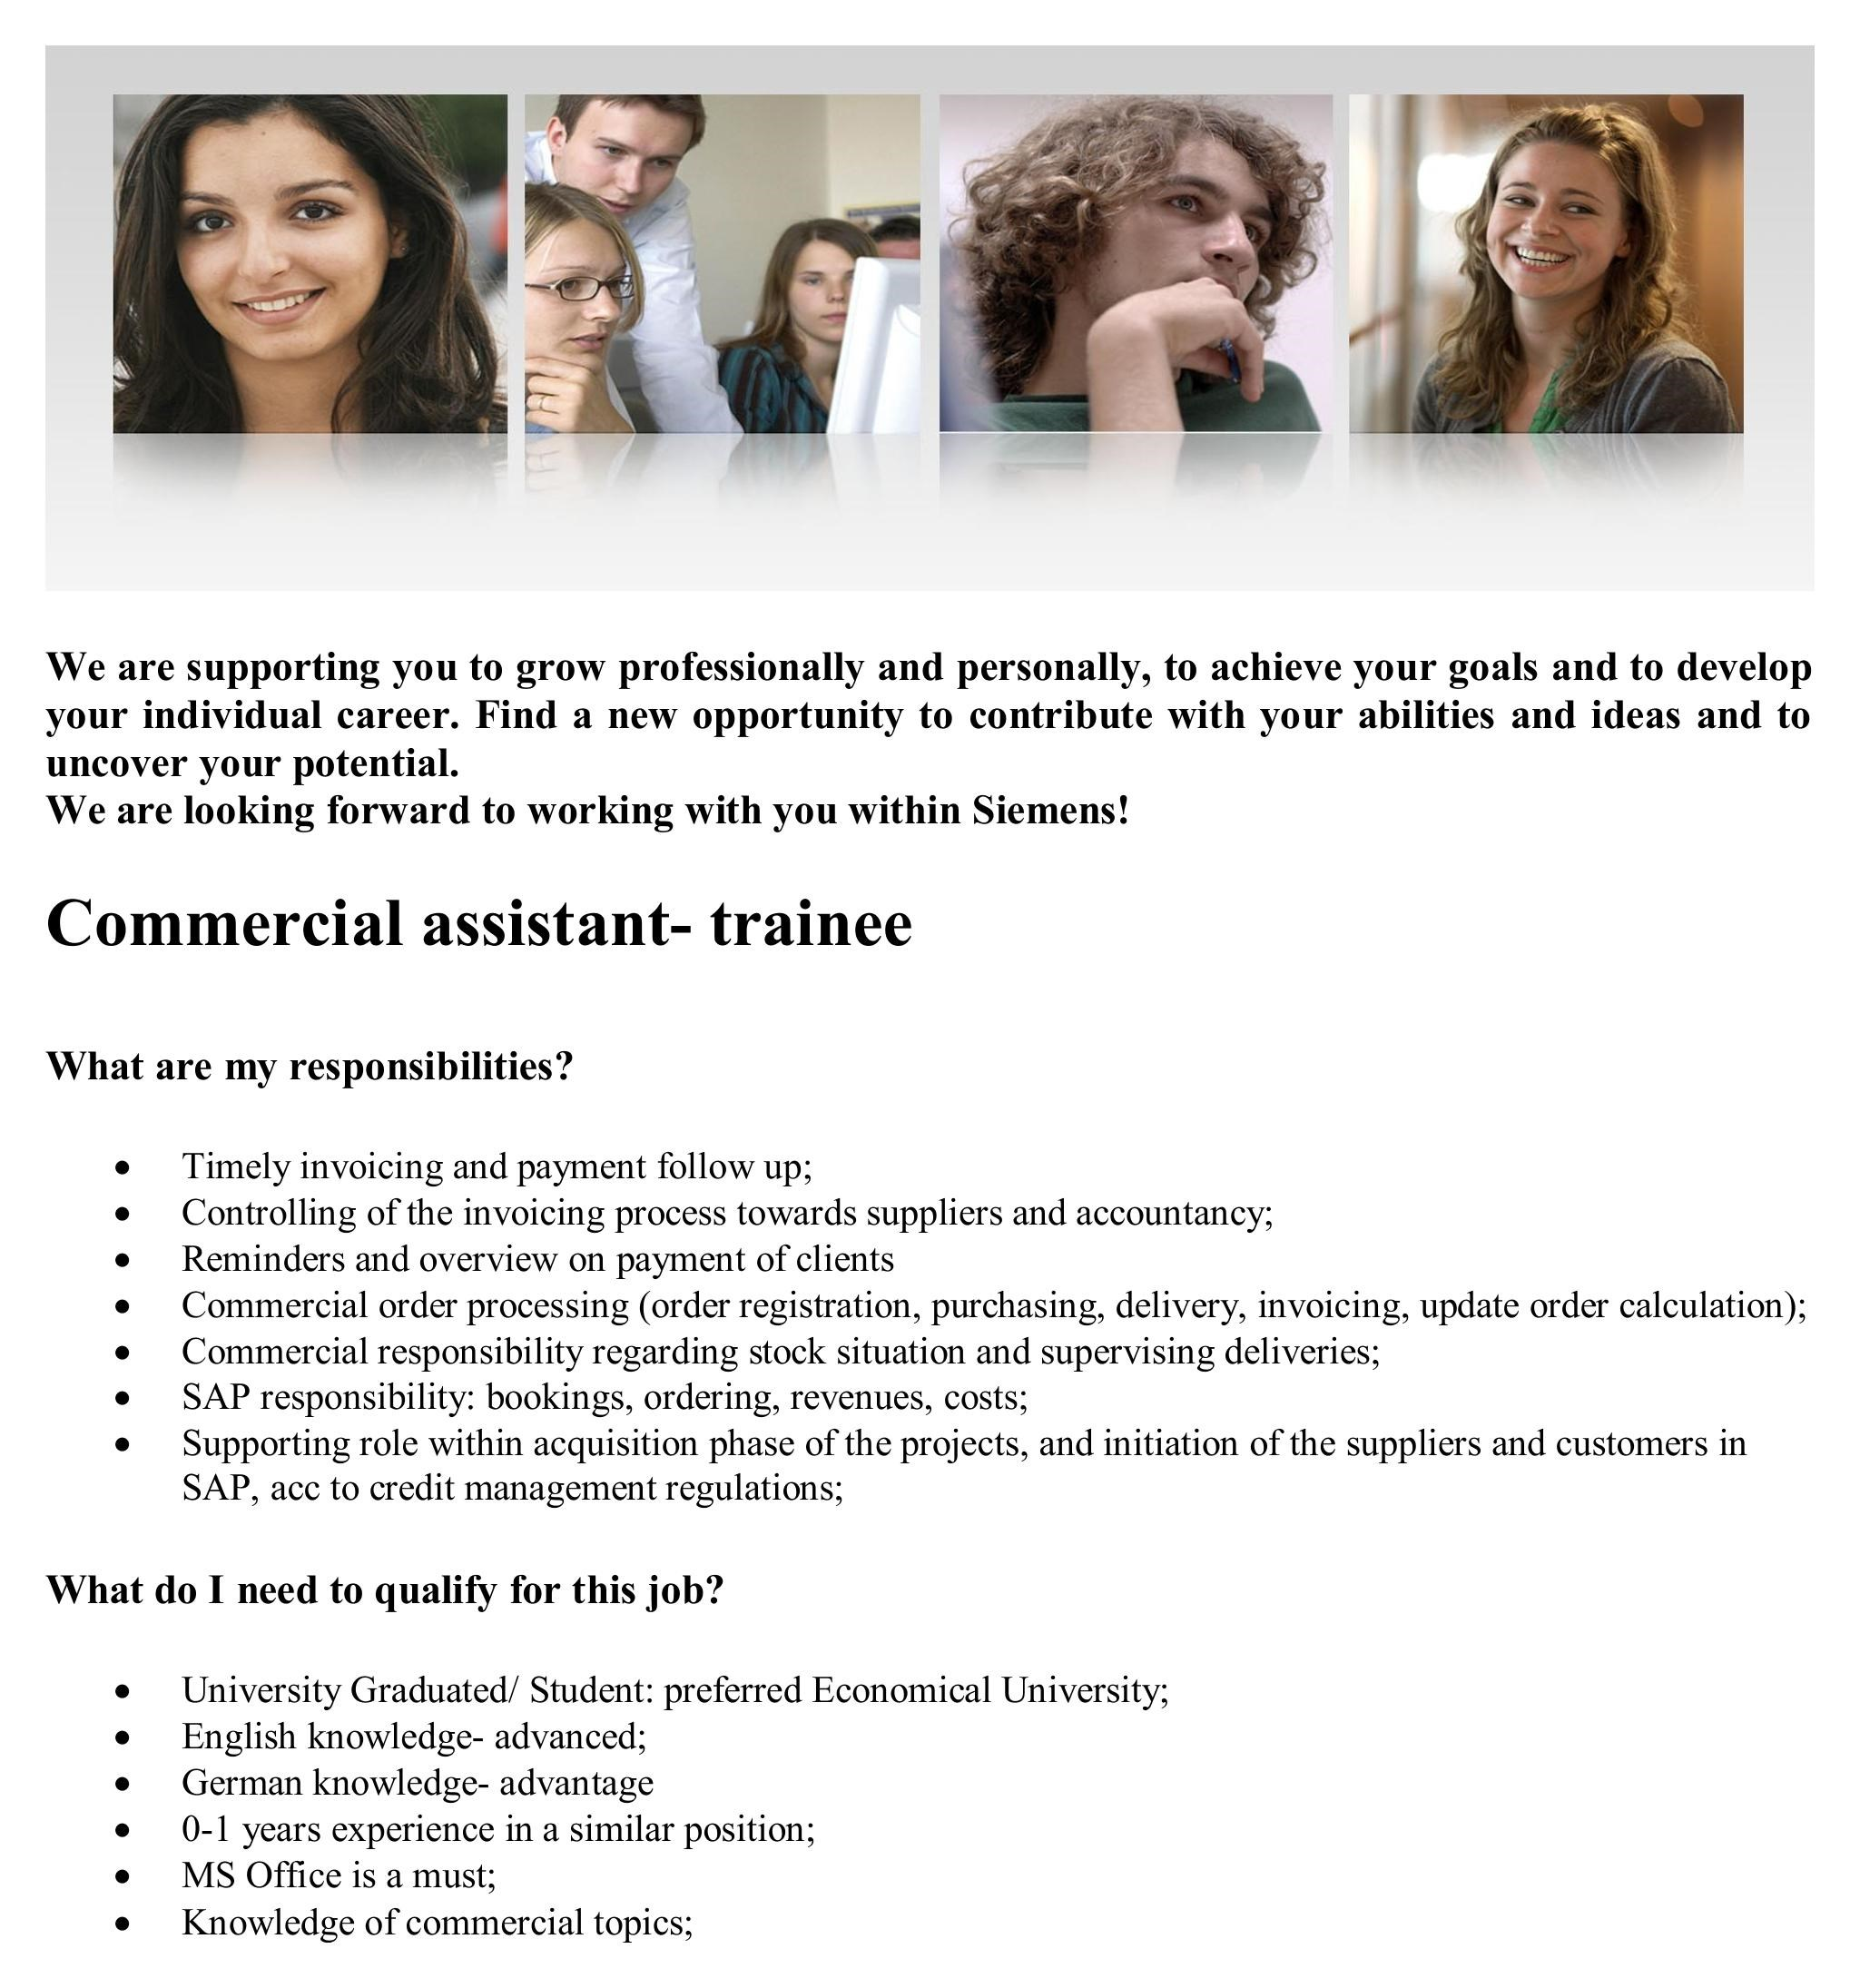 Commercial assistant- trainee pdf